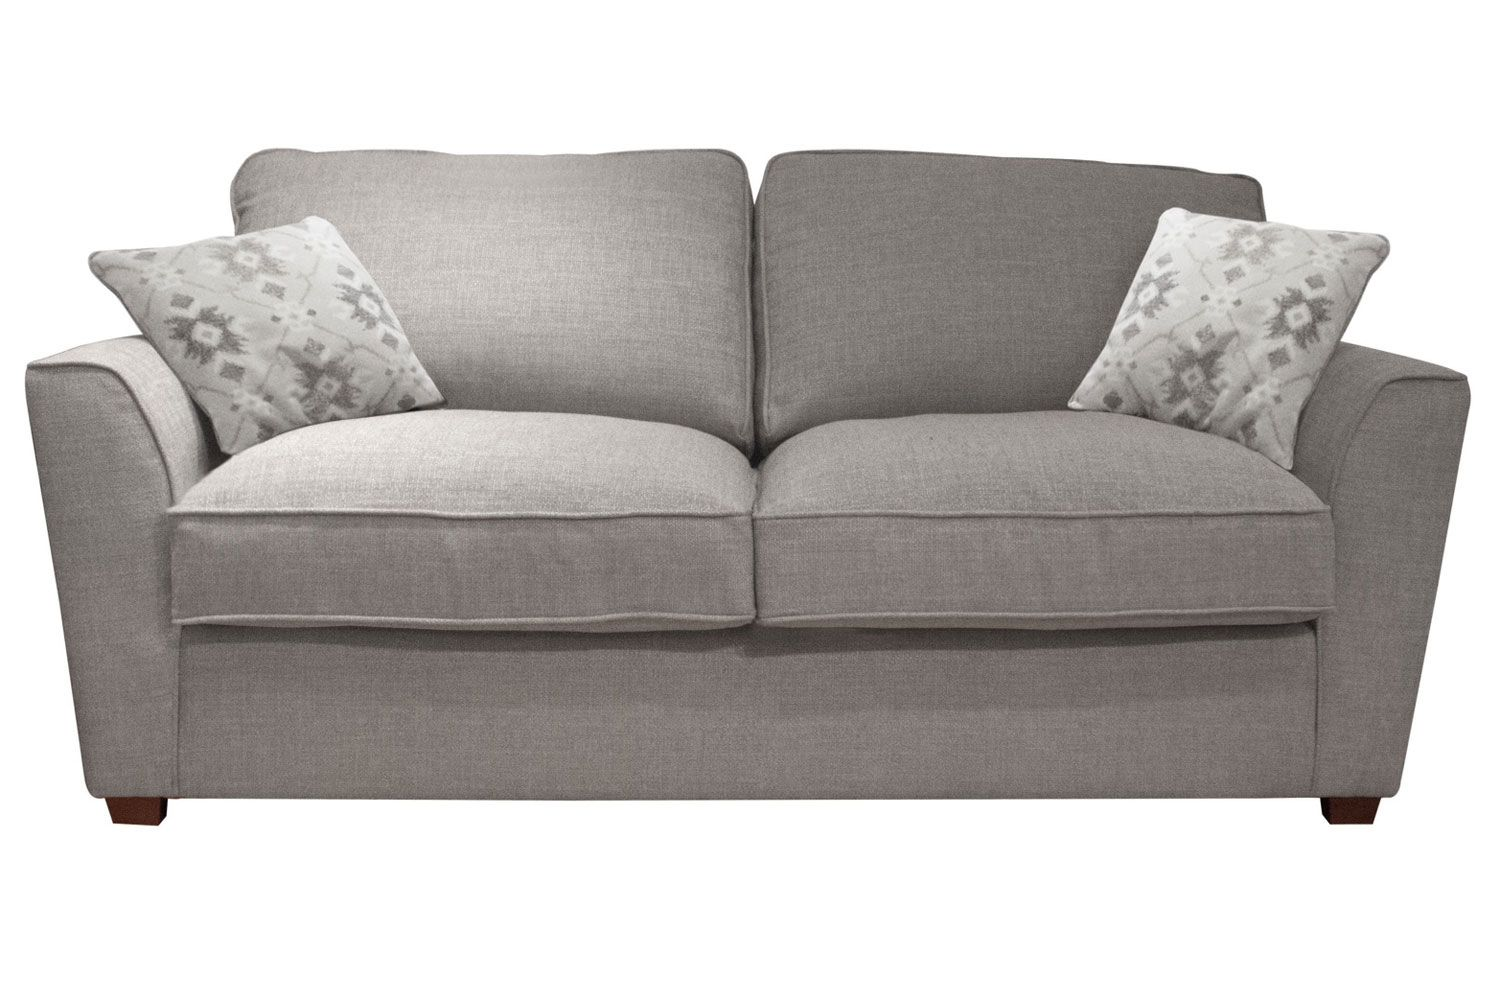 Fantasia Corner Sofa Fabric Sofas At Harvey Norman Ireland